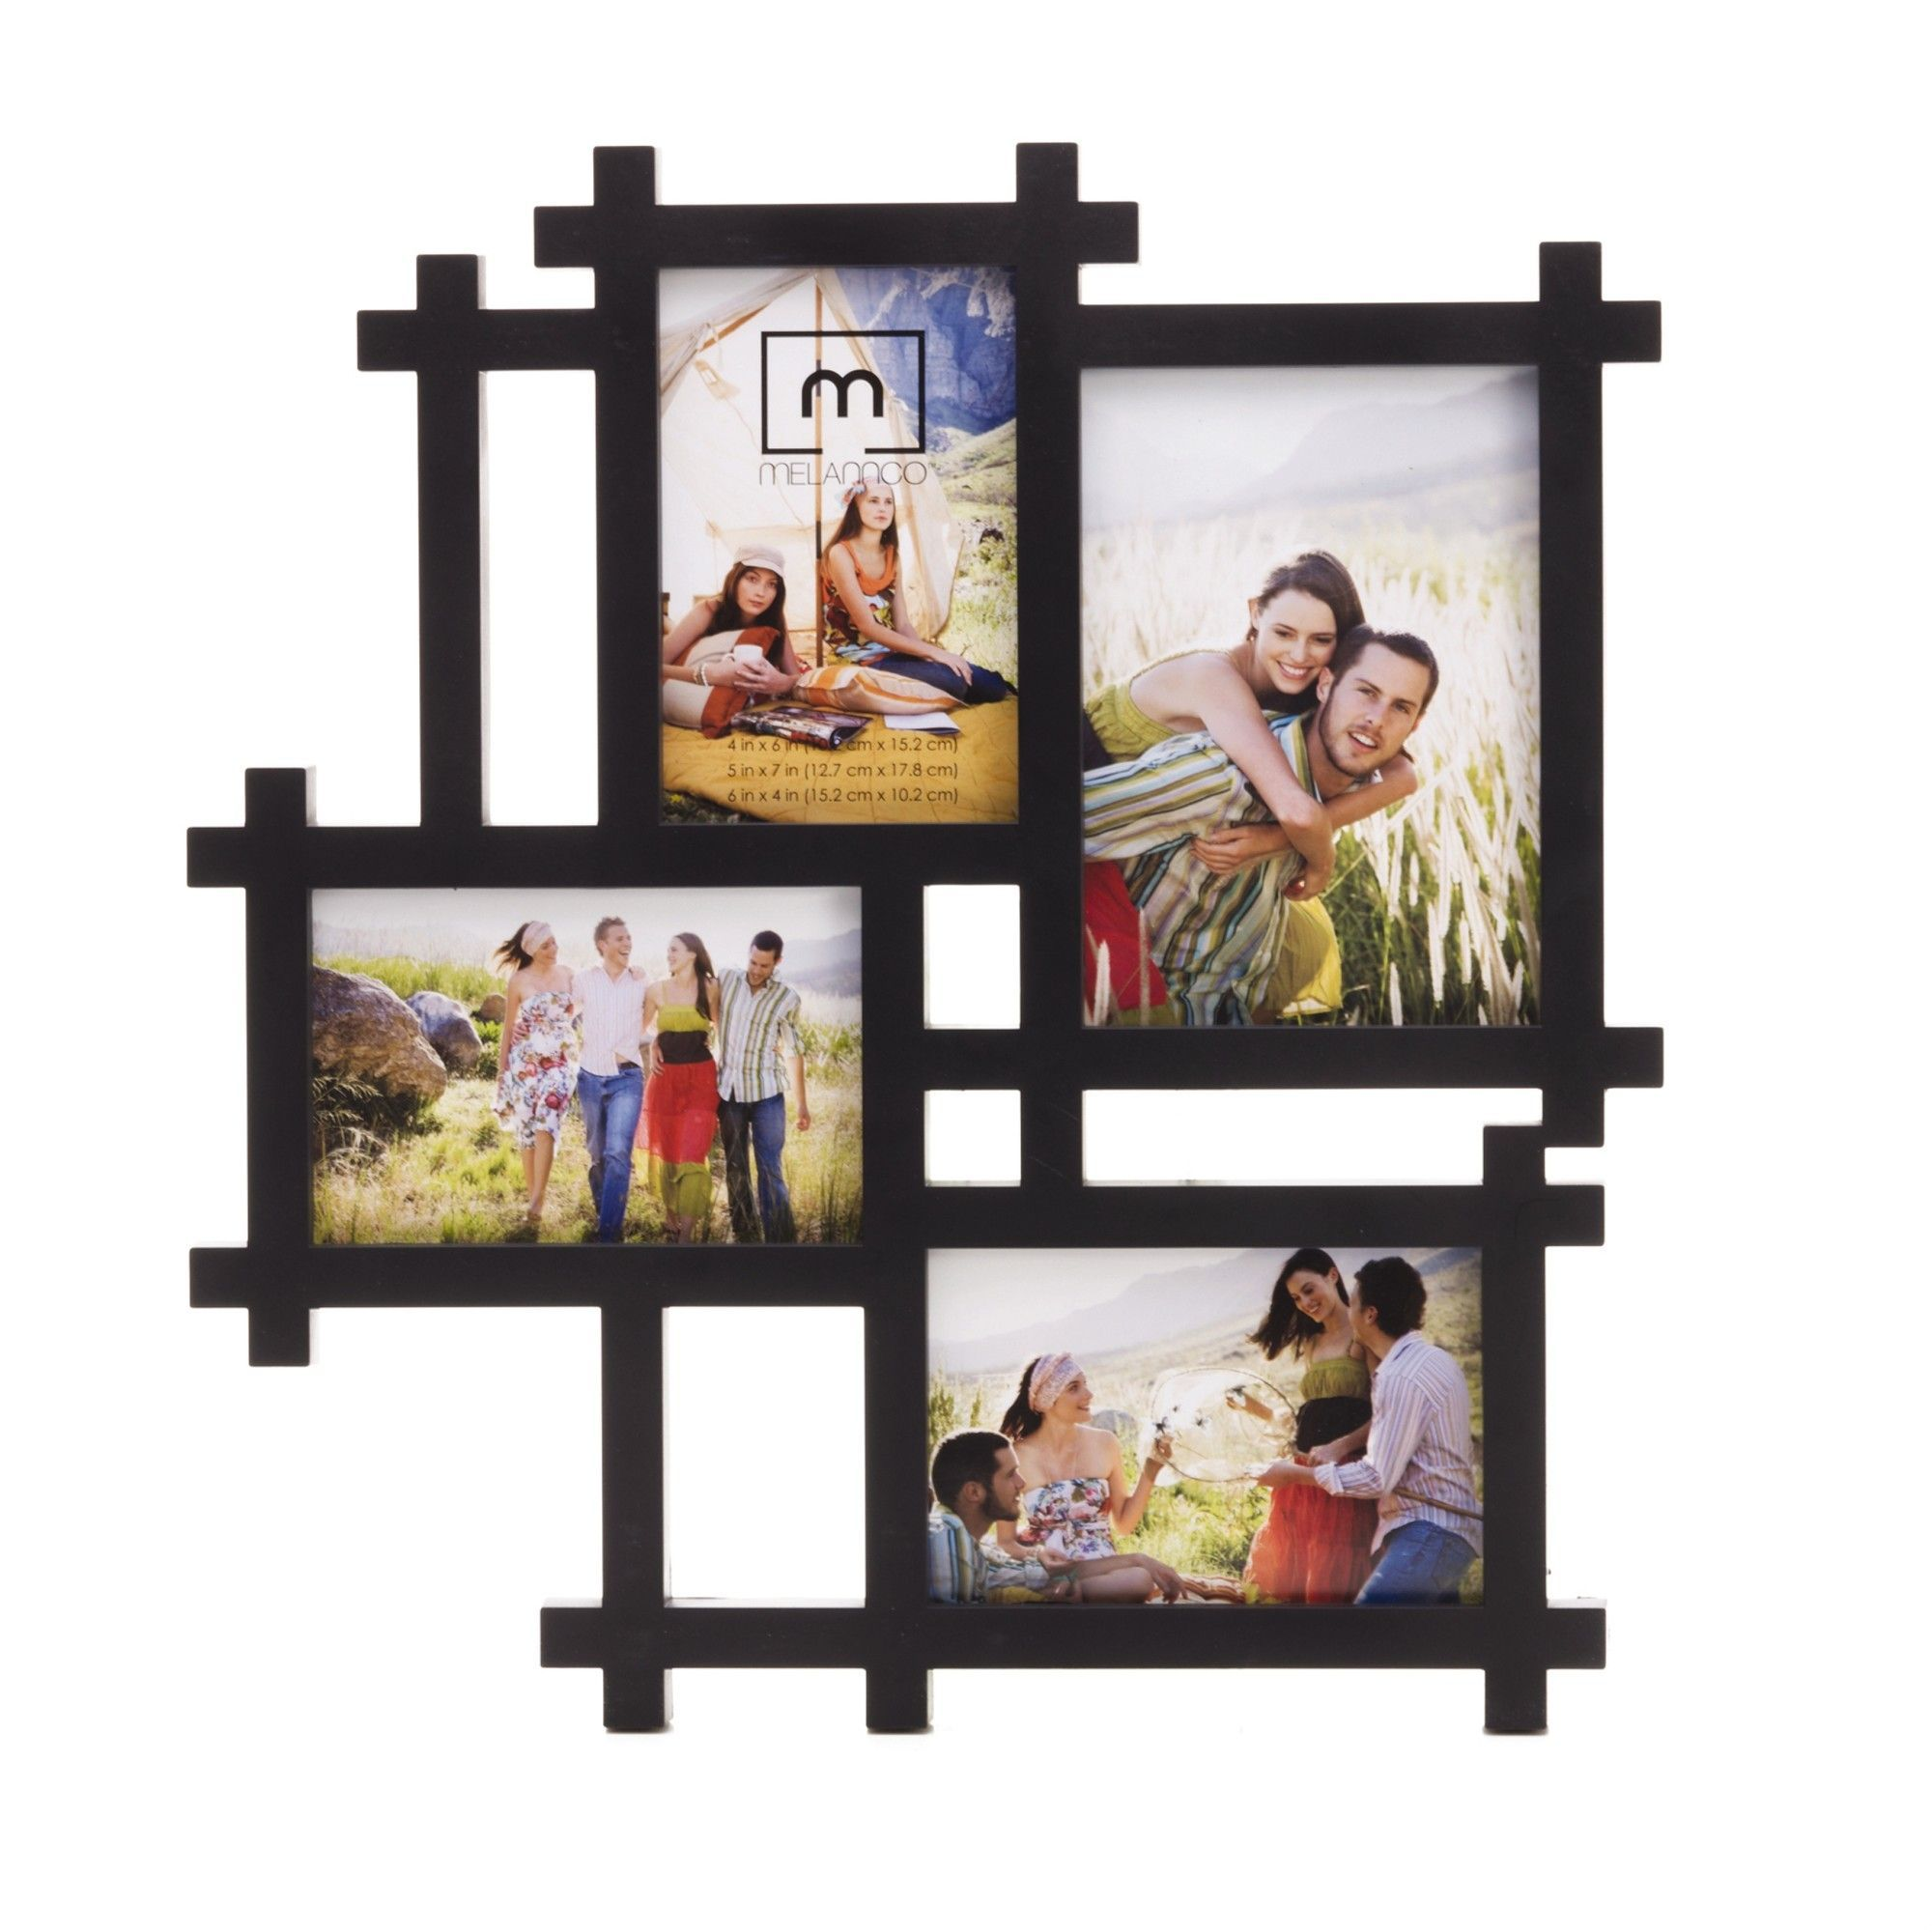 Buy Picture Frames 4 Opening Lattice Collage Frame Products Collage